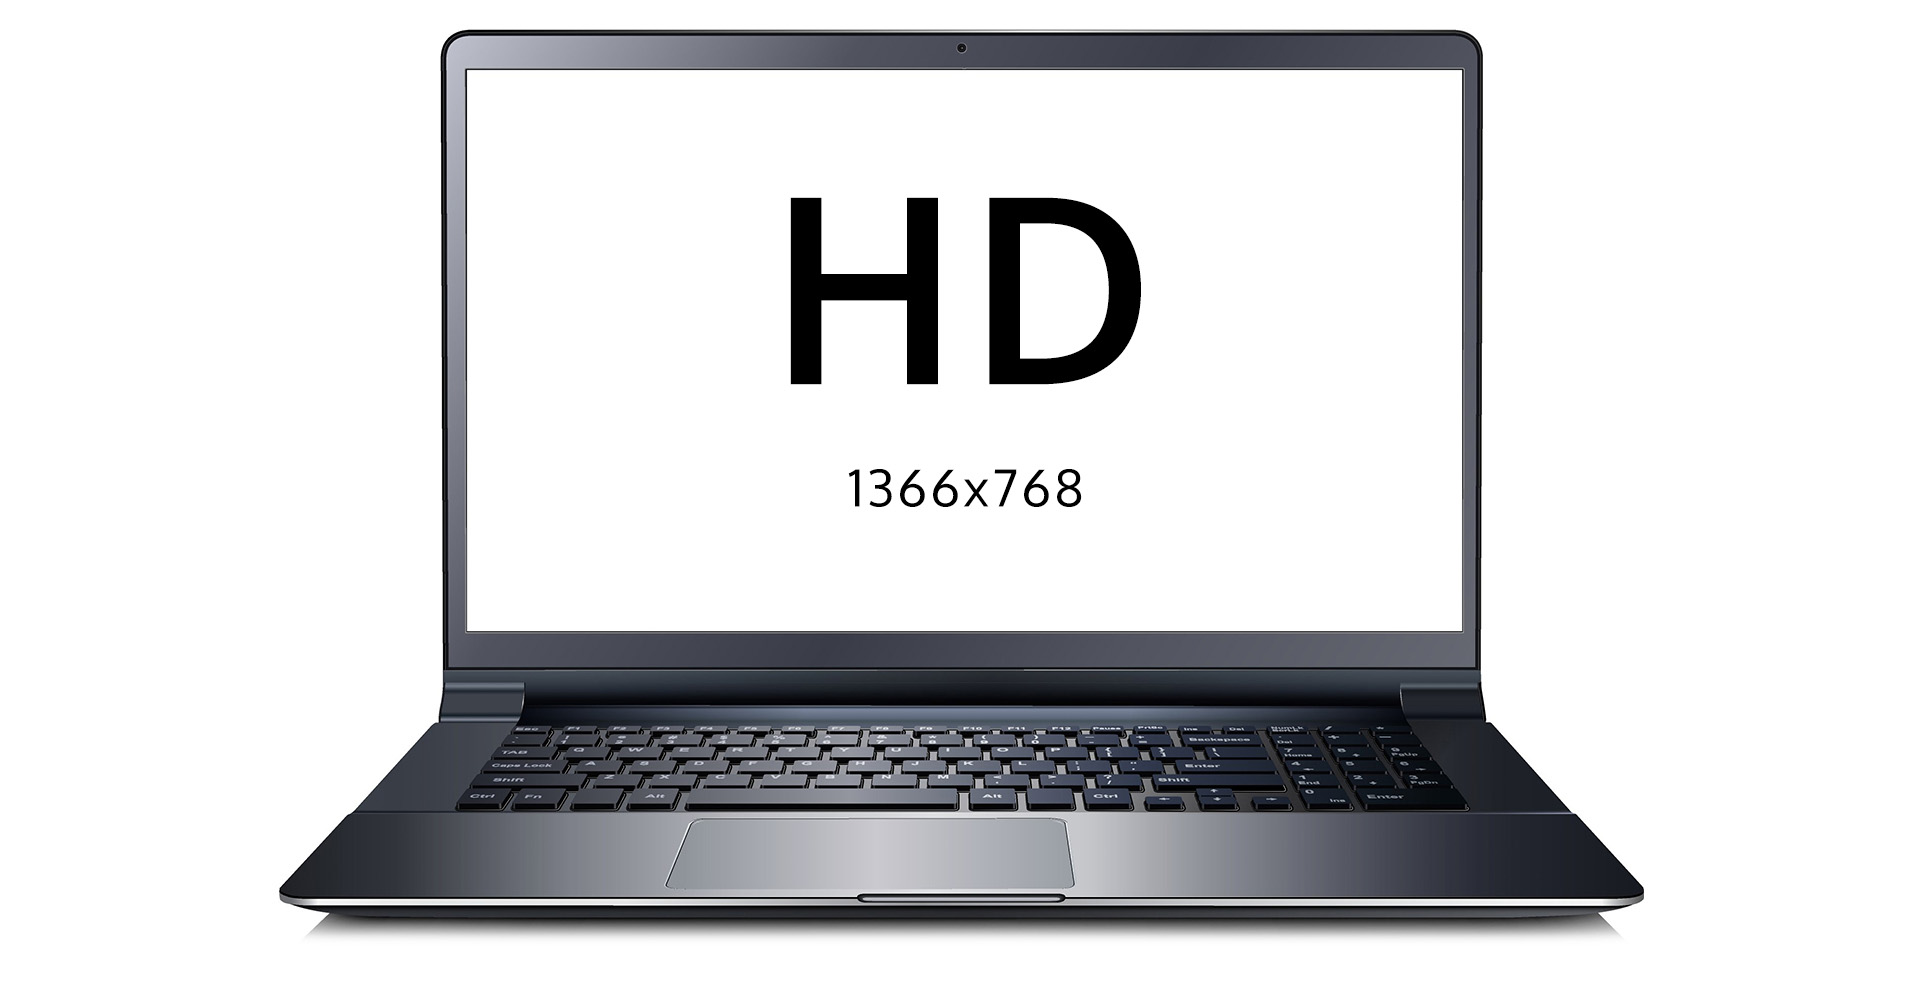 Dell Inspiron 15 3567 i3-6006U 4GB 1TB WIN10                             HD 1366x768 raiška